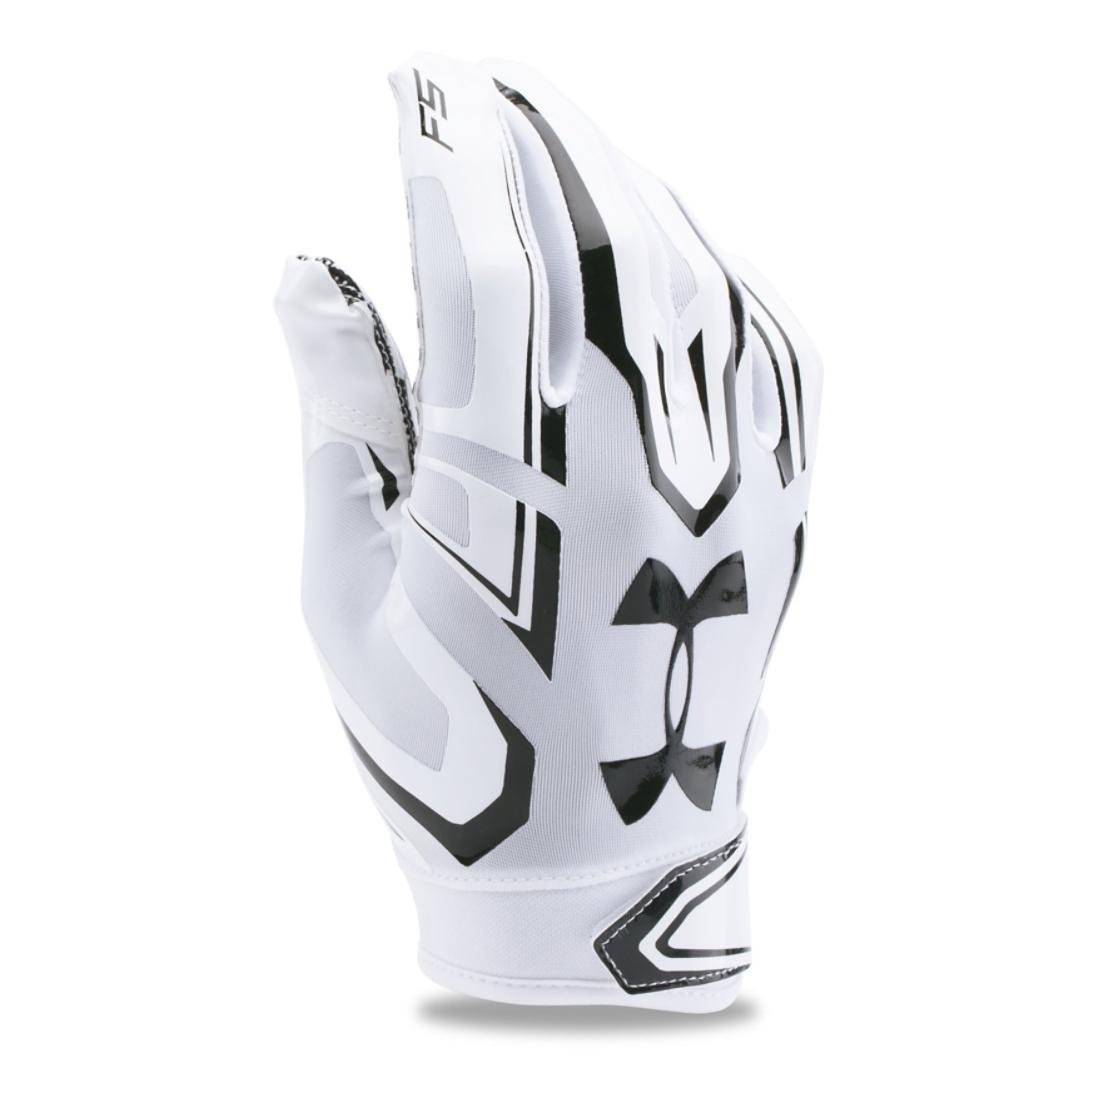 Under Armourメンズf5 Football Gloves B01A6LY8CI ホワイト/ブラック X-Large X-Large|ホワイト/ブラック